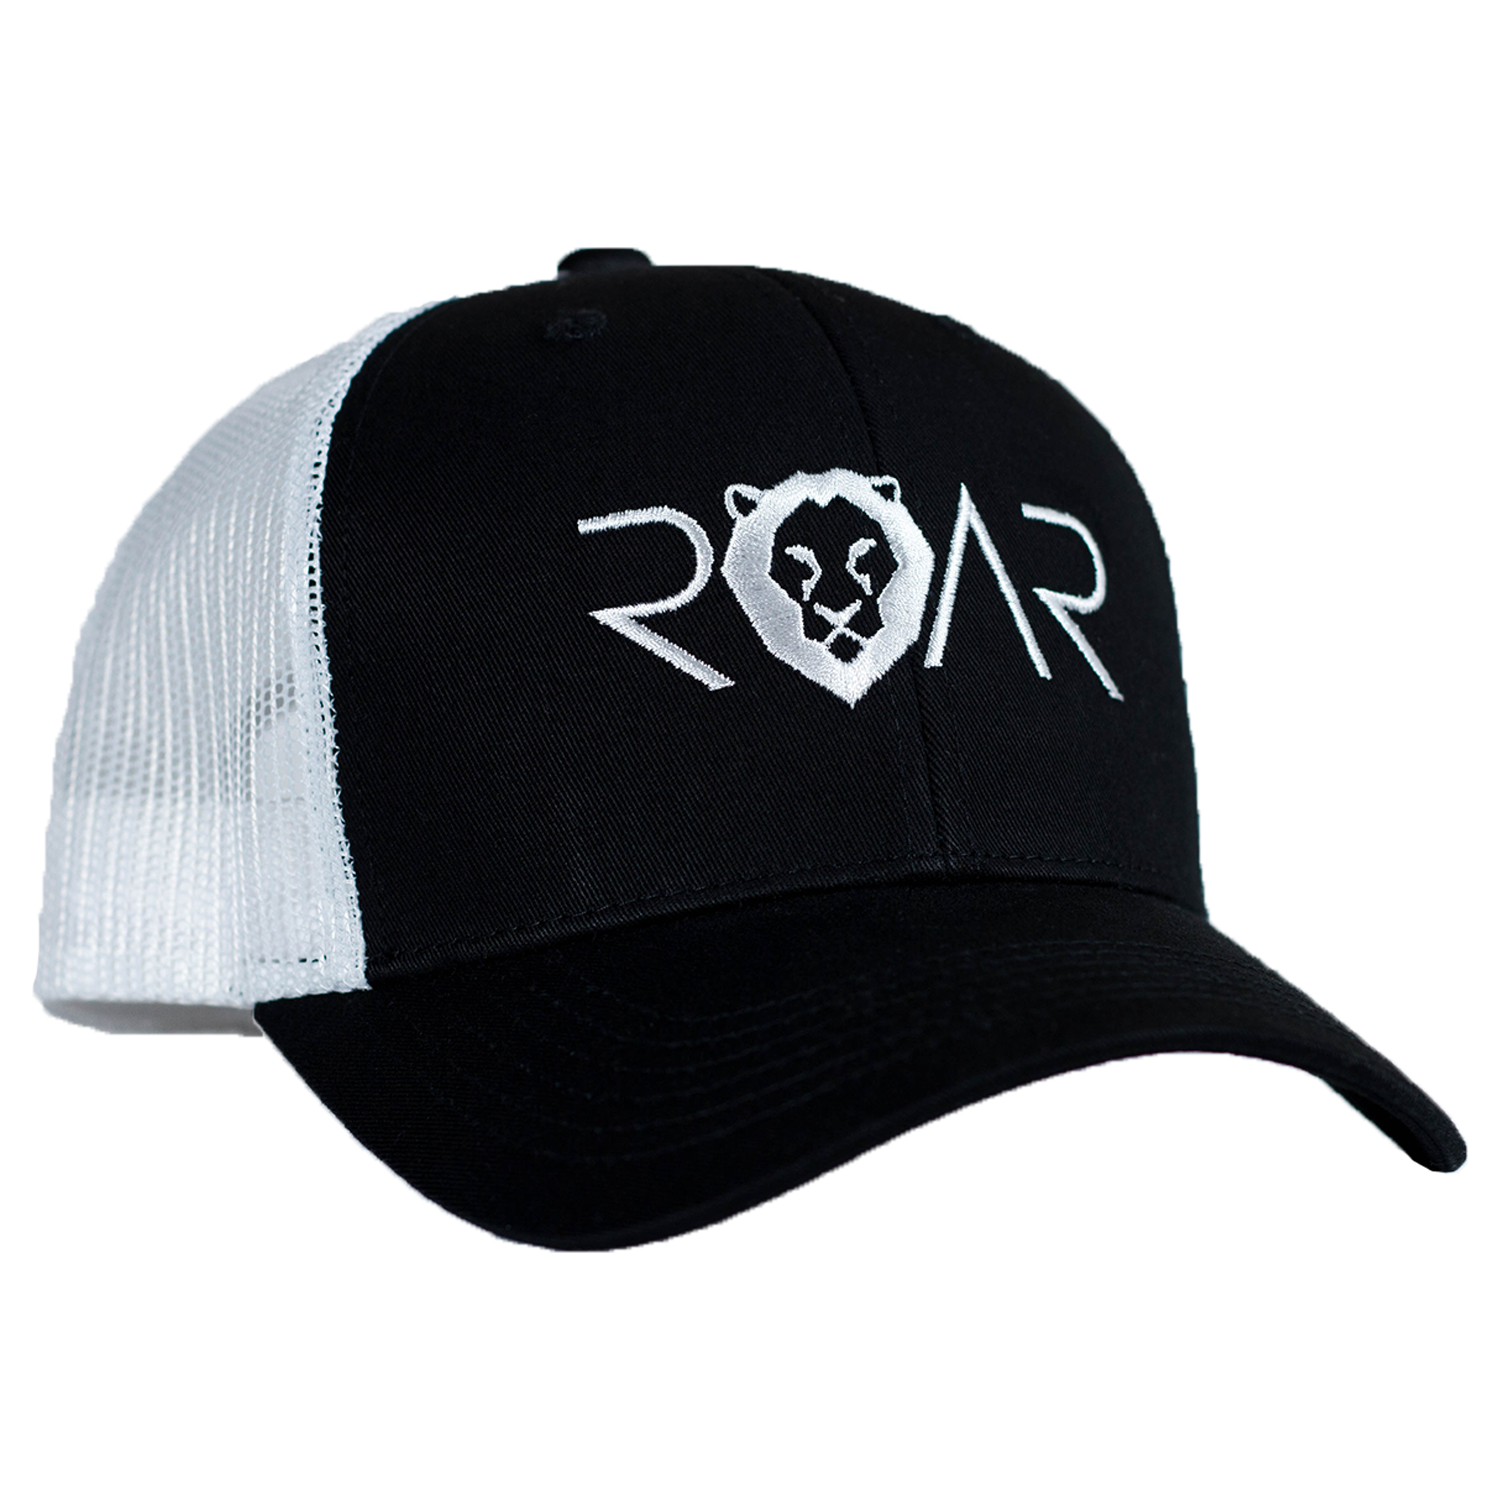 ROAR TRUCKER HAT - BLACK/WHITE